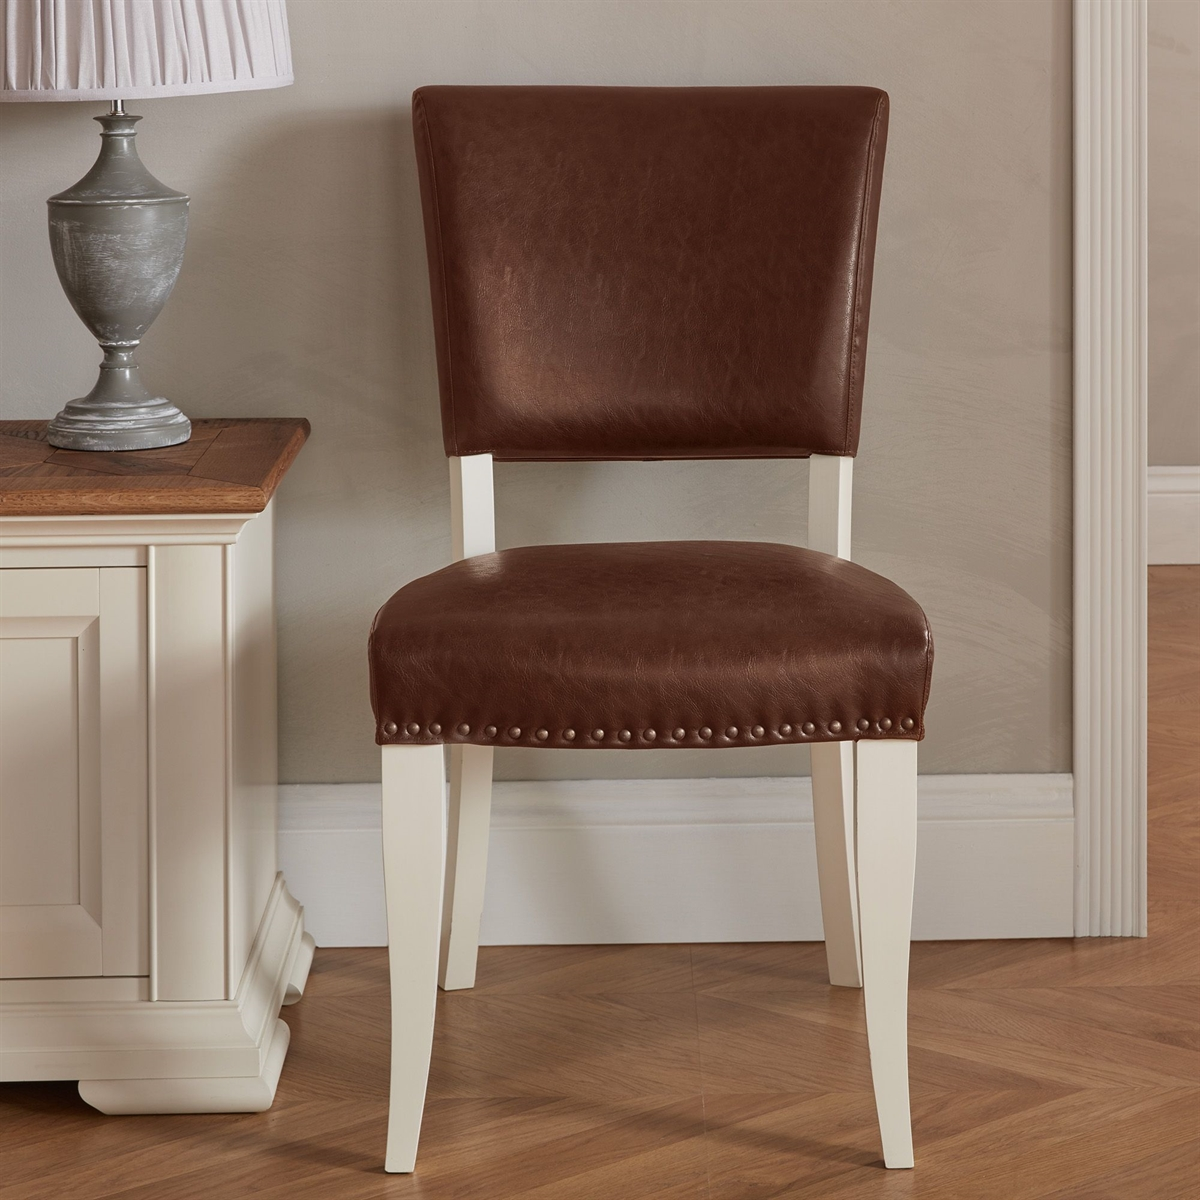 Belgrave Two Tone - Upholstered Chair - Tan Faux Leather